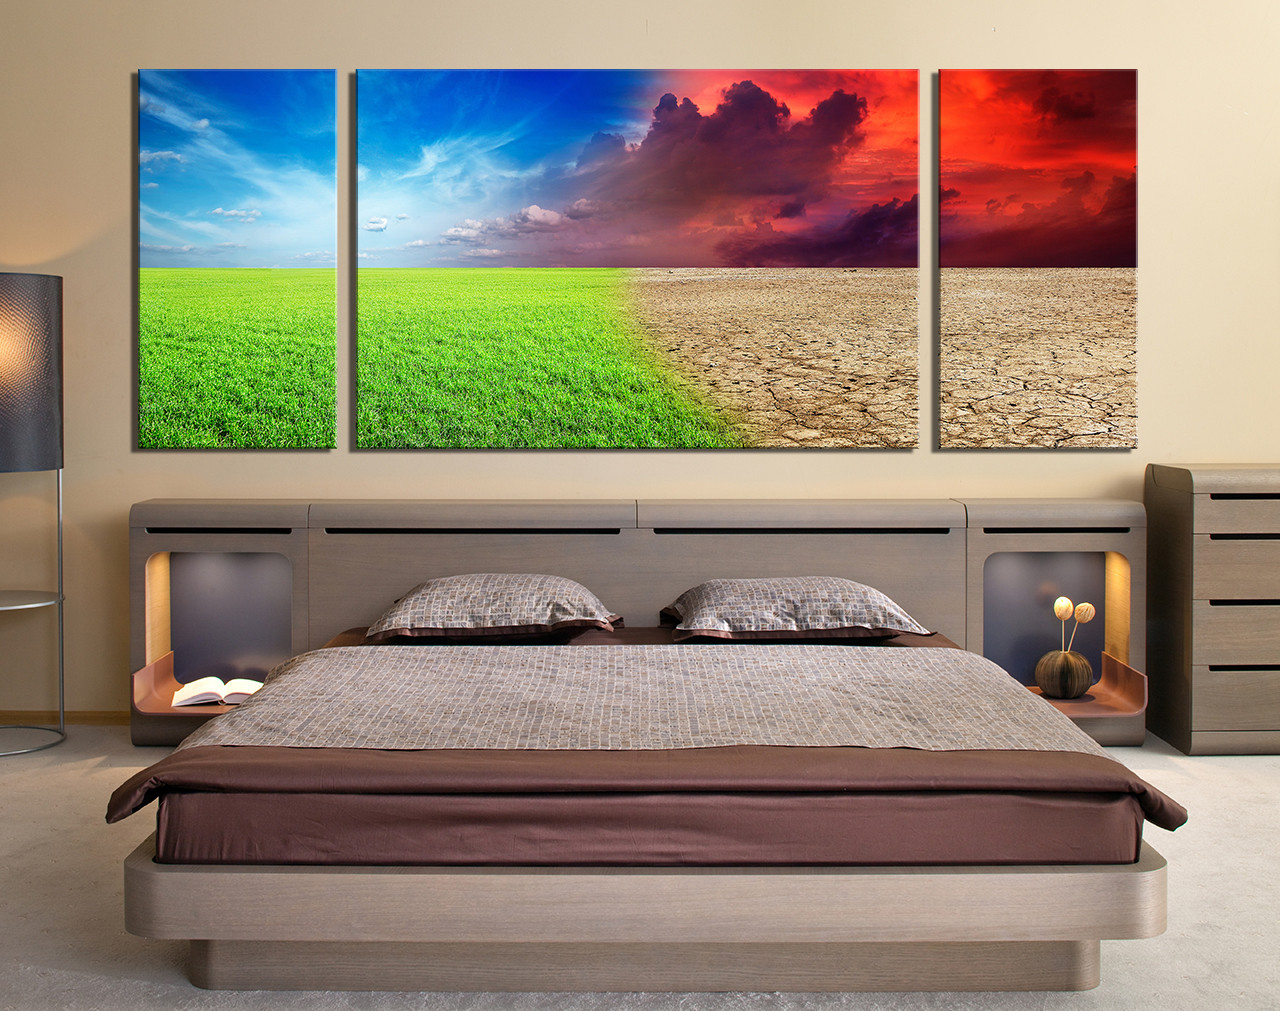 3 piece wall decor, colorful multi panel canvas, scenery canvas